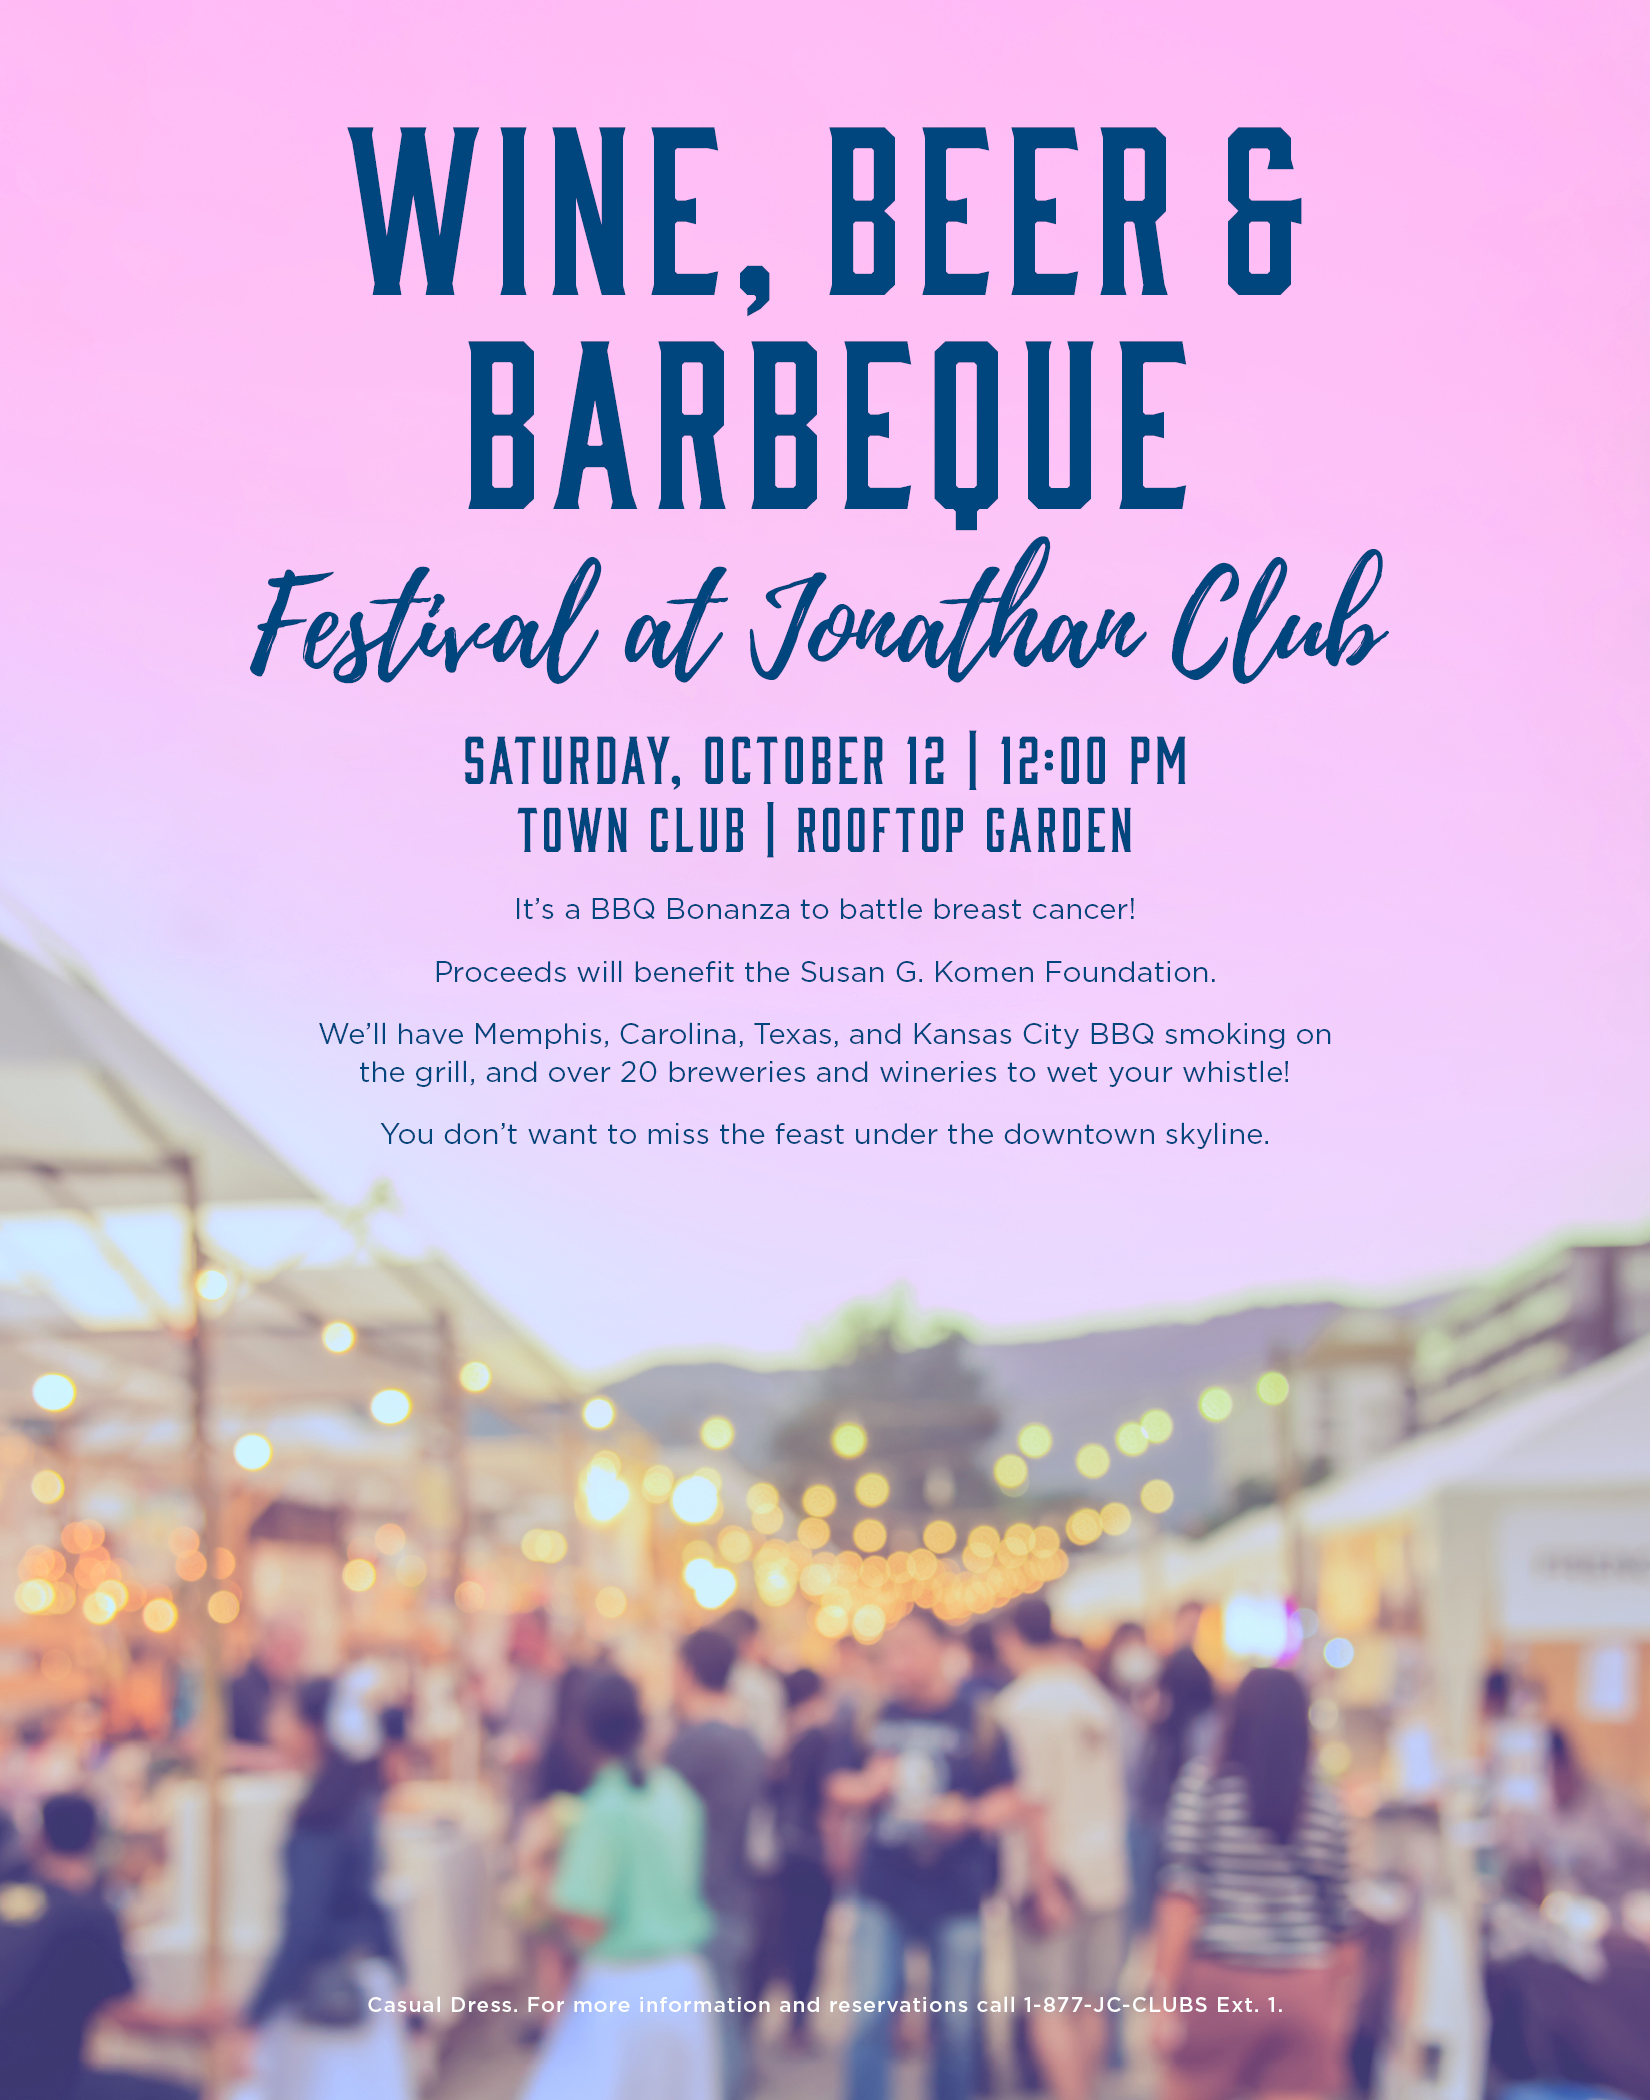 Wine-Beer-Barbeque-2019-Poster-Small-NonMember2.jpg